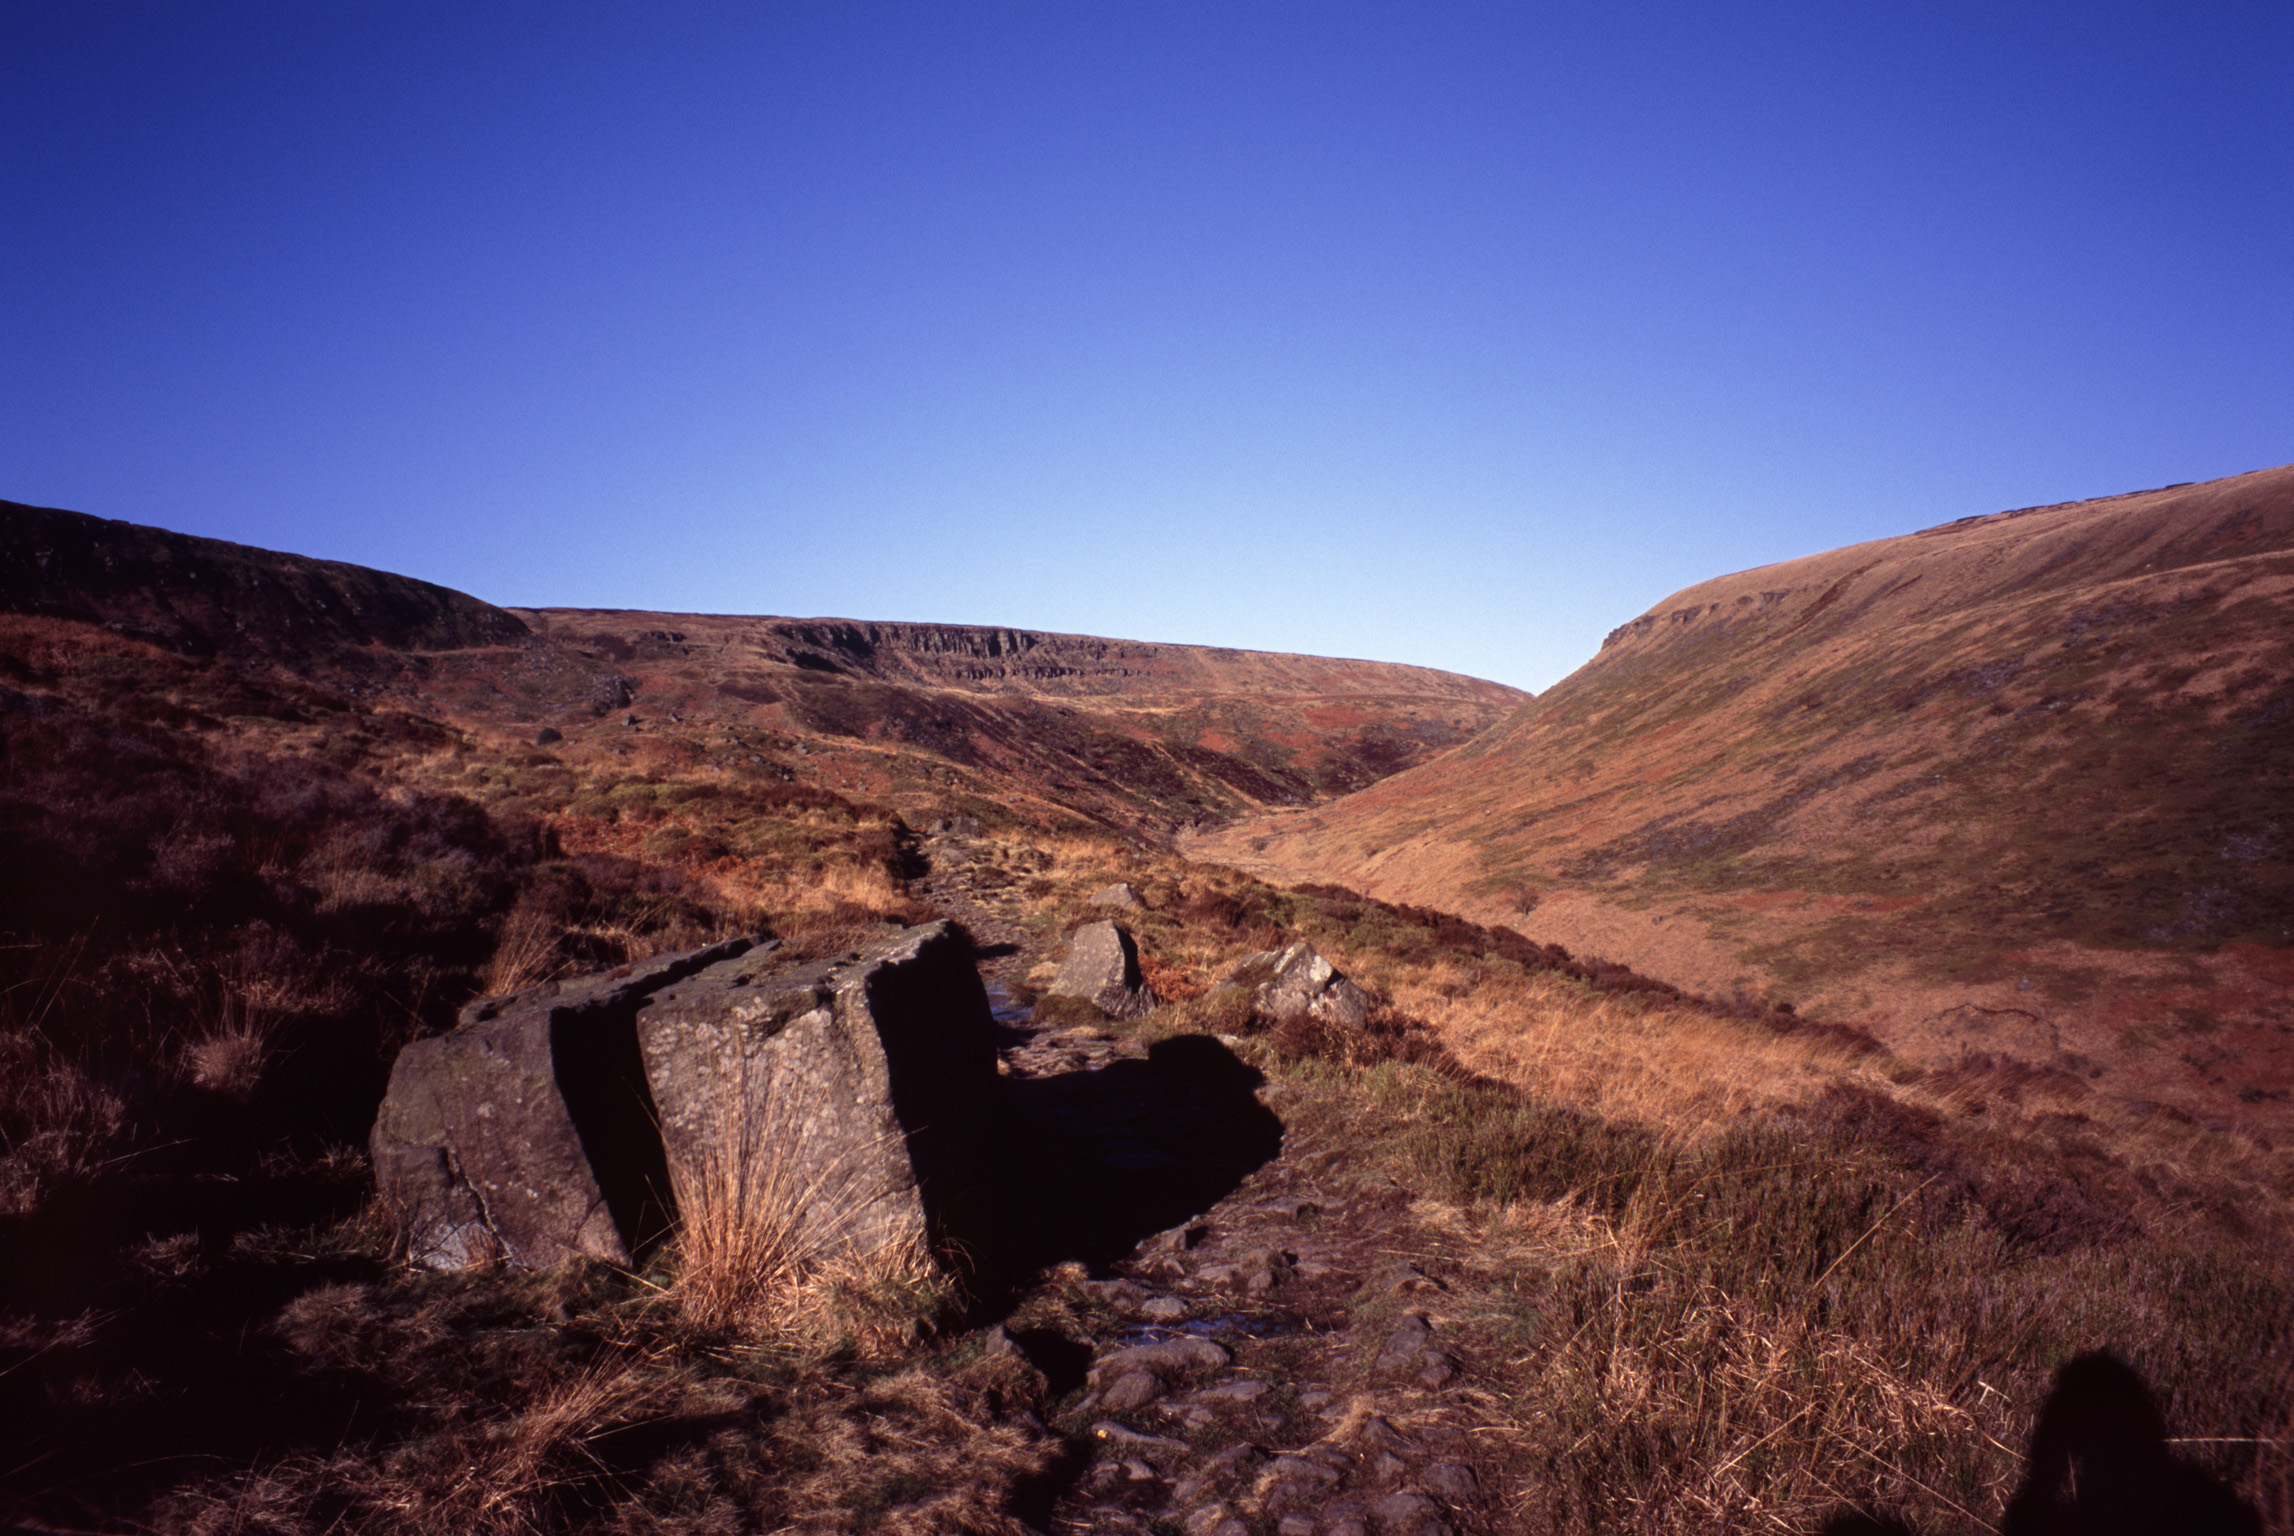 Pennines landscape with grassy moorlands, rocks and hills in North West England